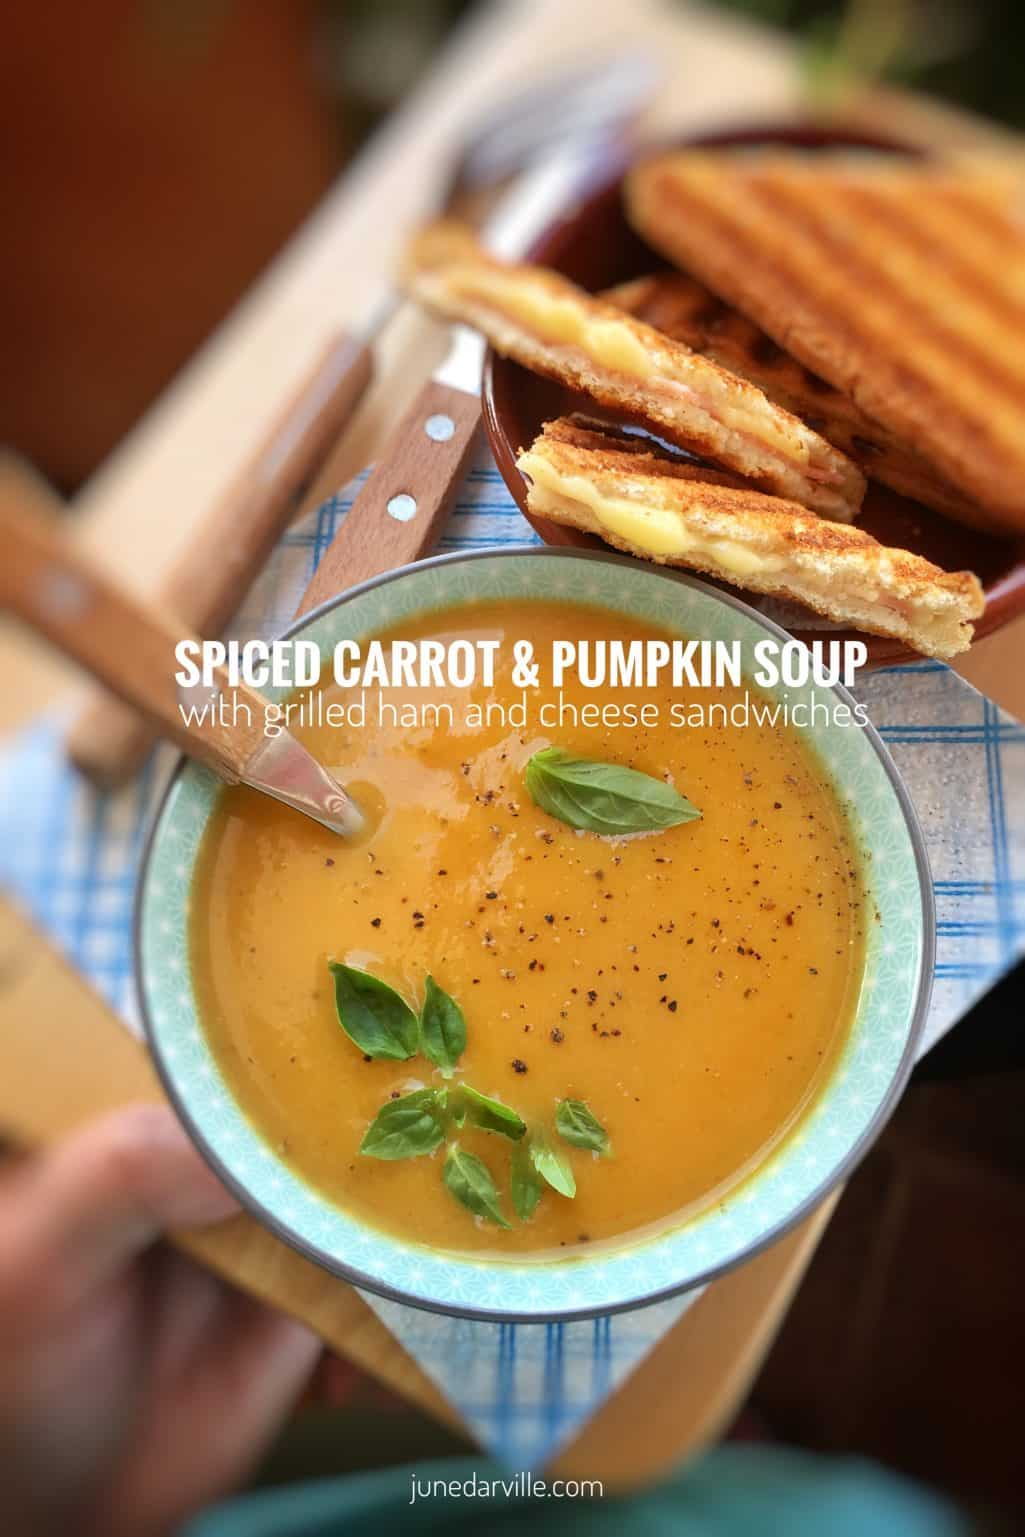 Silky smooth carrot pumpkin soup spiced with cloves and cinnamon, served with crunchy toasted ham sandwiches... perfection!